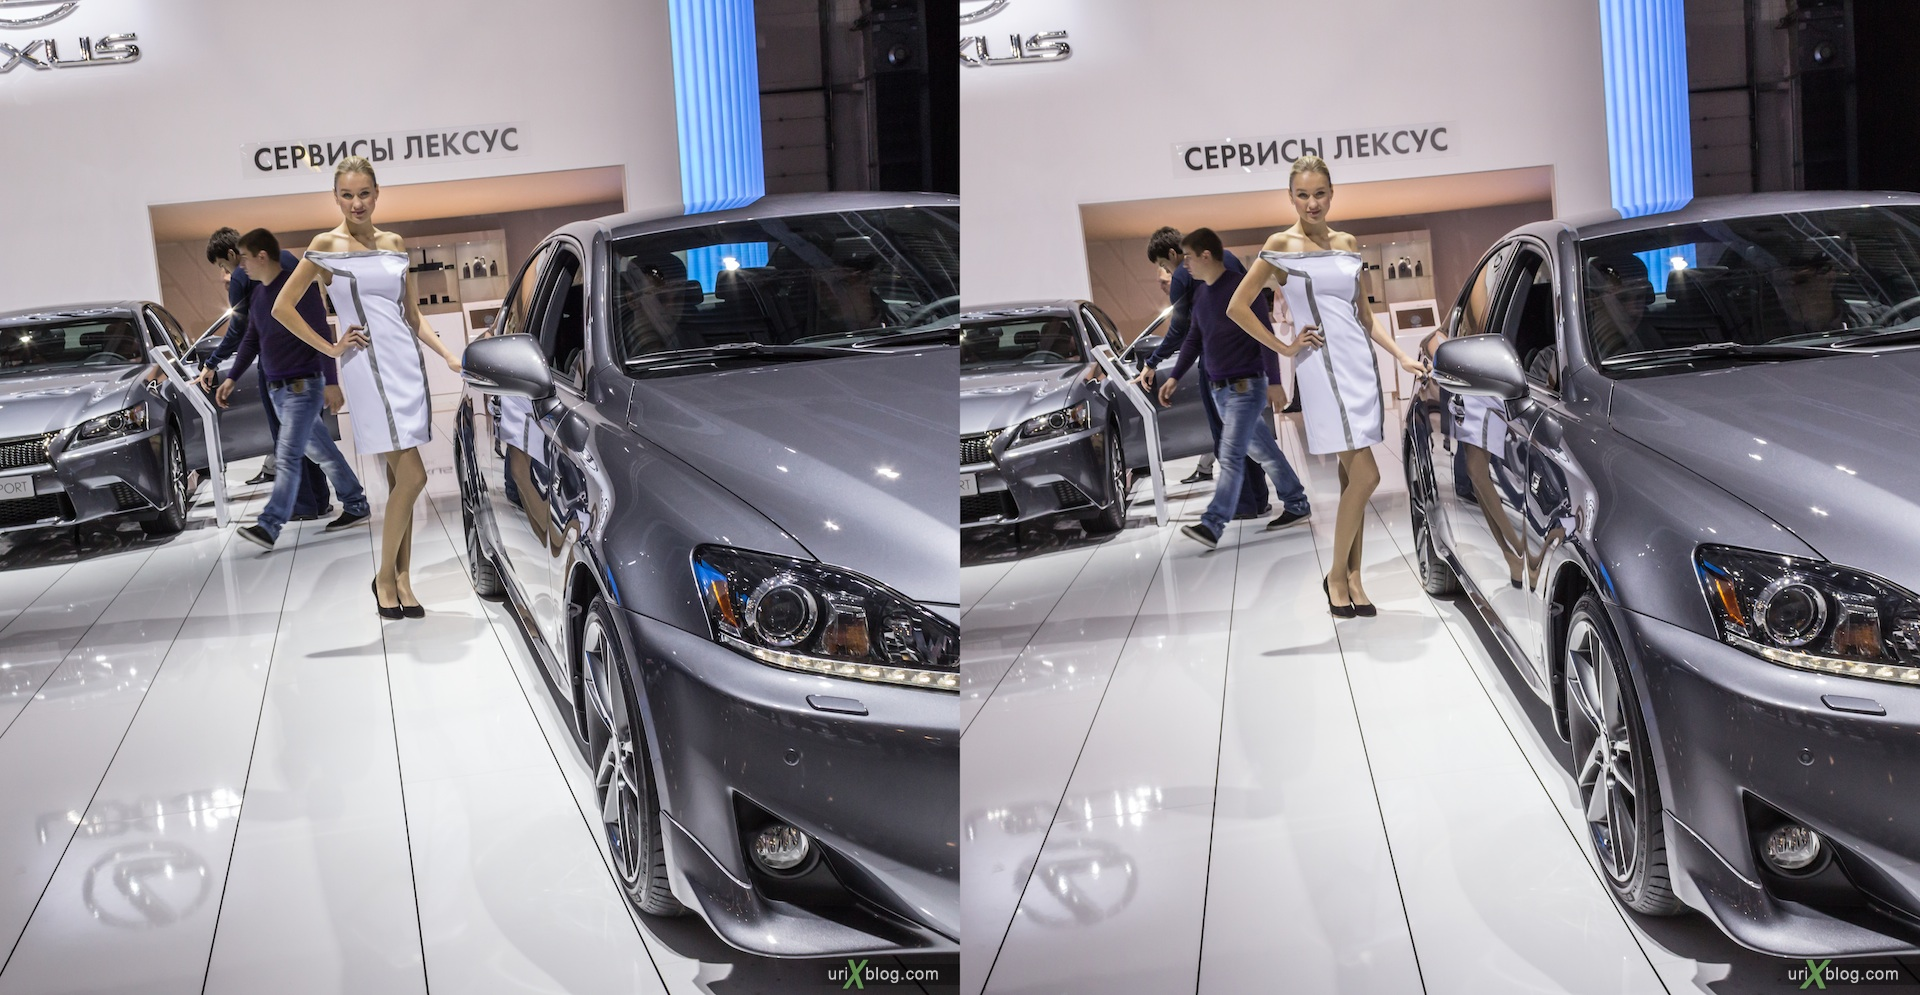 2012, Lexus IS 250, девушка, модель, girl, model, Moscow International Automobile Salon, auto show, 3D, stereo pair, cross-eyed, crossview